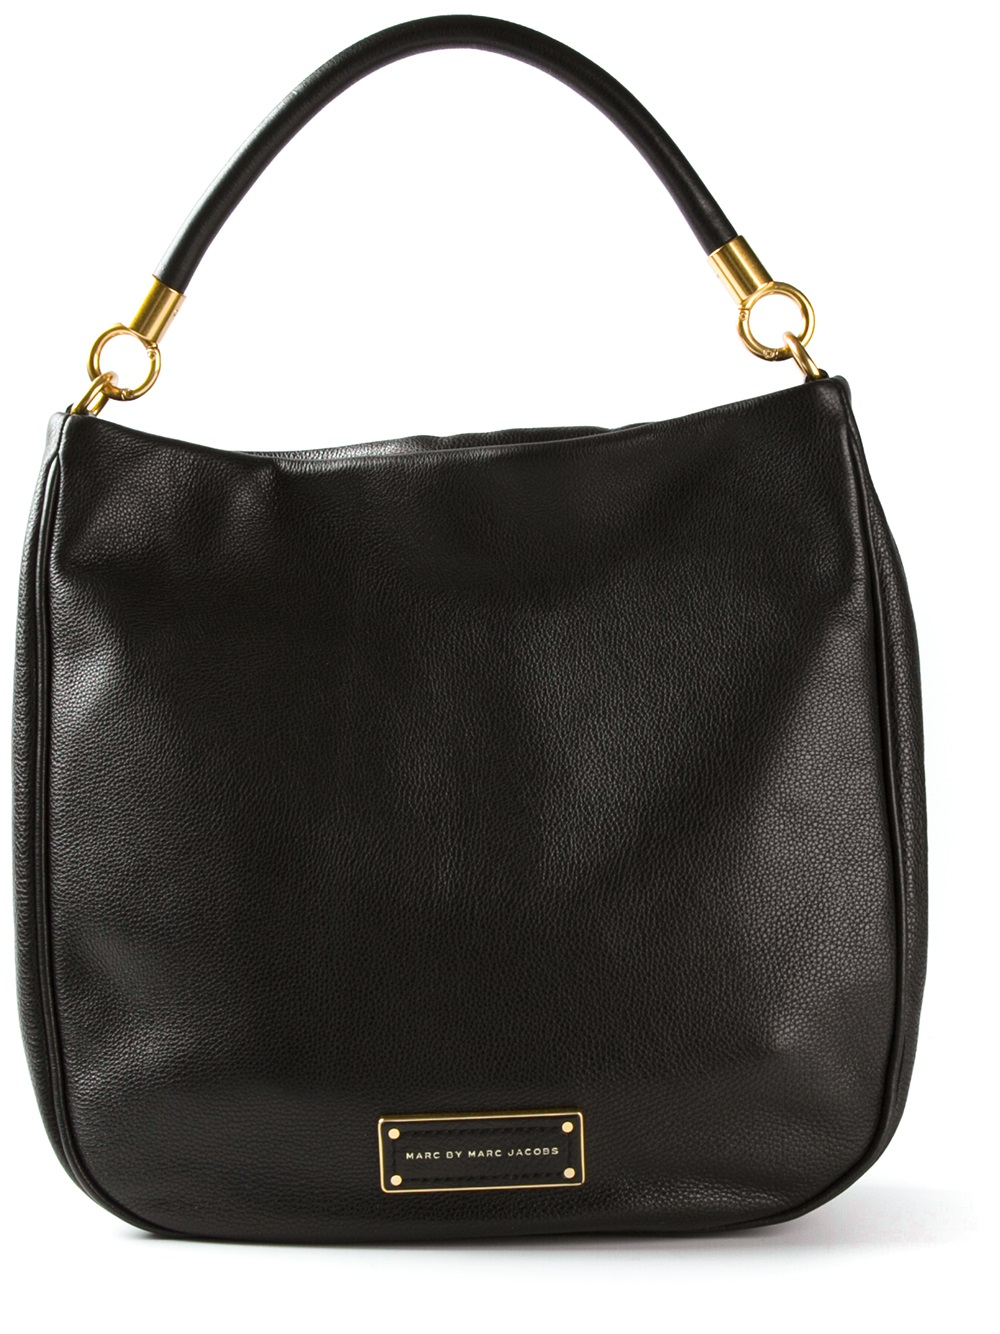 lyst marc by marc jacobs 39 too hot to handle 39 hobo bag in black. Black Bedroom Furniture Sets. Home Design Ideas